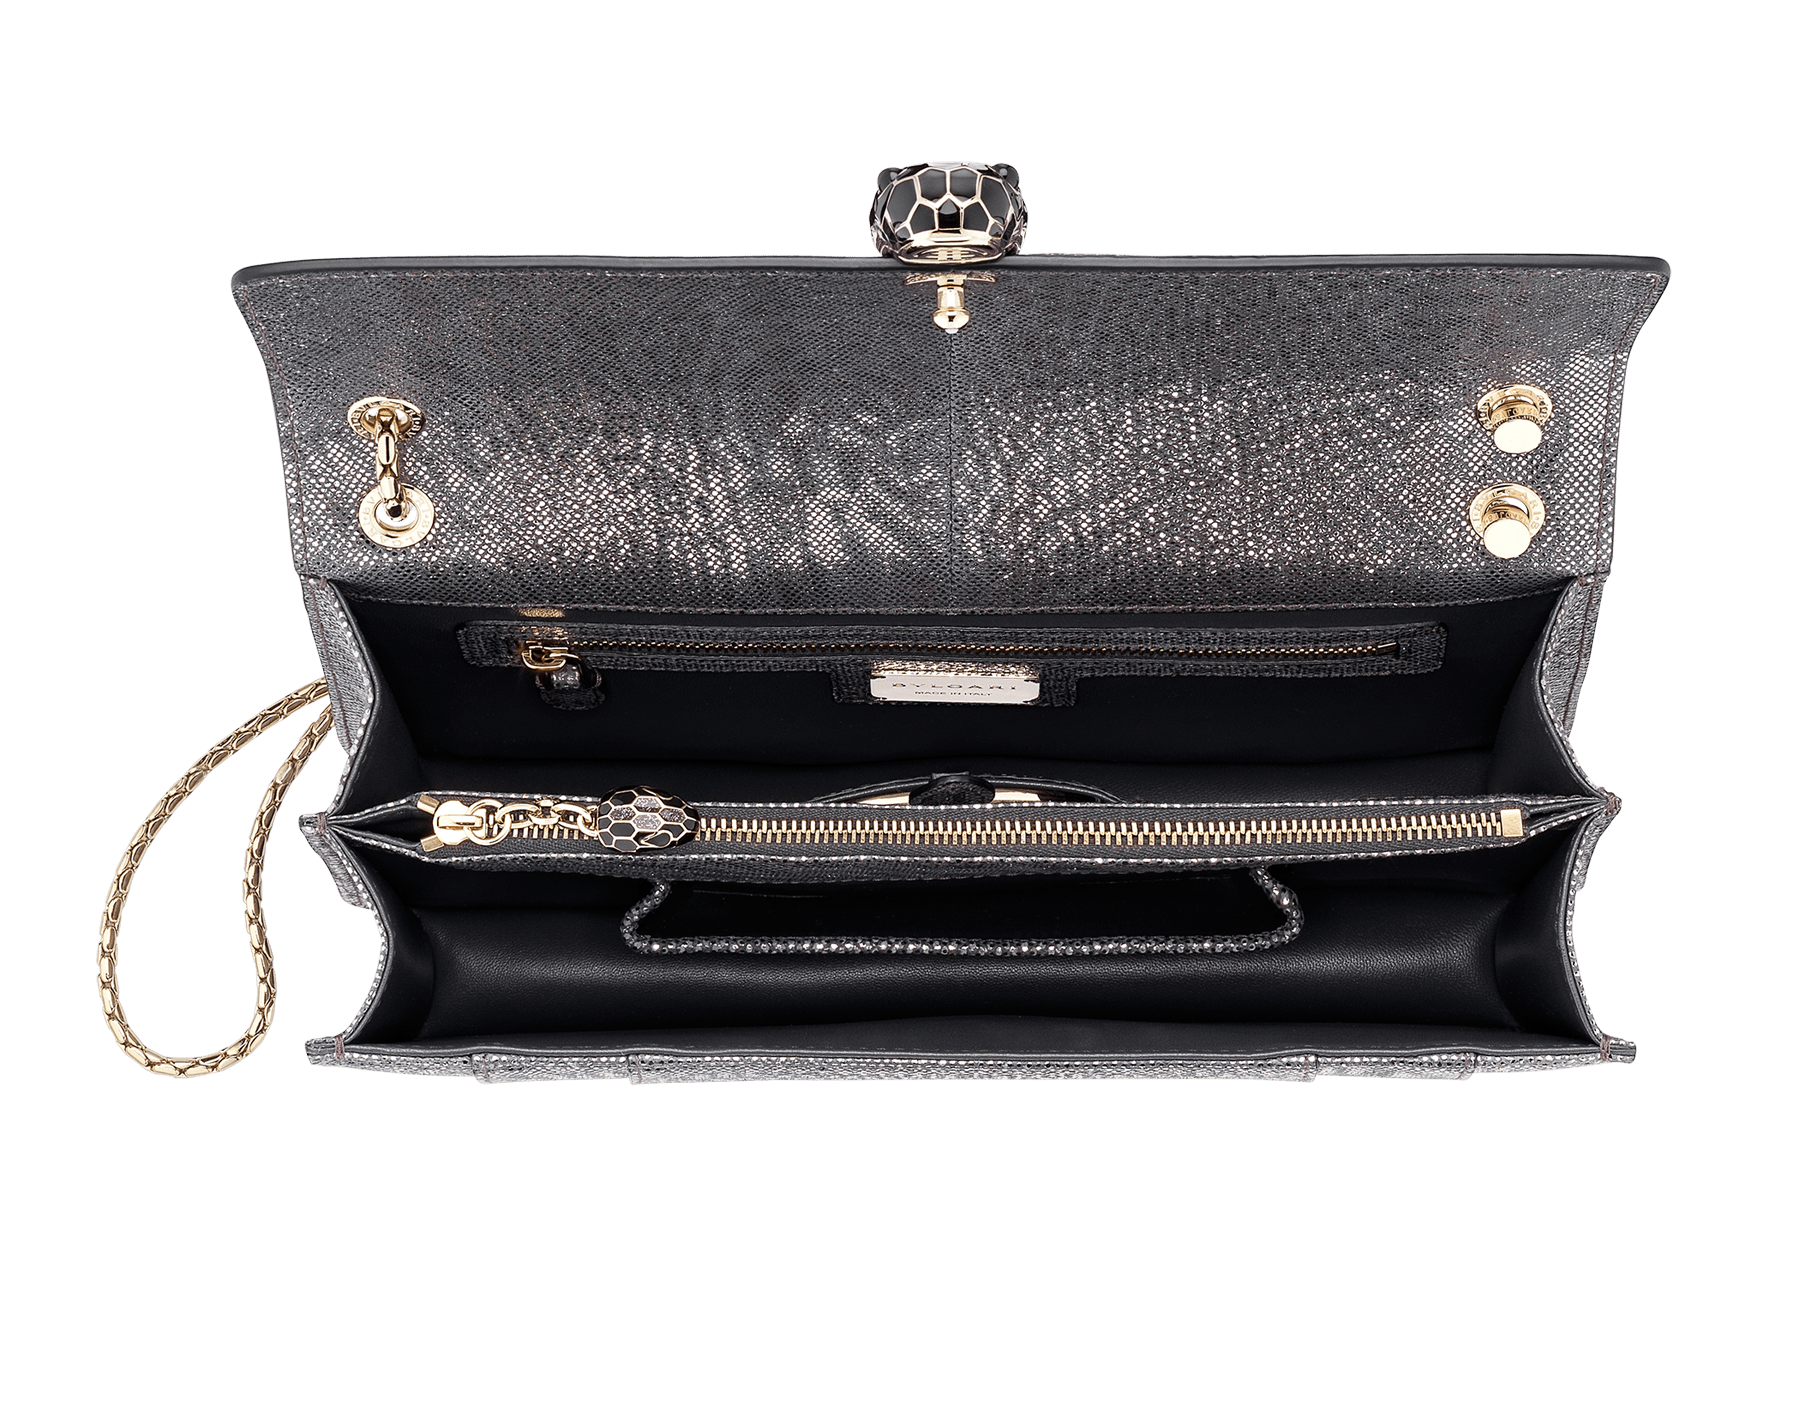 Flap cover bag Serpenti Forever in metallic silver karung skin. Brass light gold plated tempting snake head closure in shiny black and glitter silver enamel, with eyes in black onyx.  521-MK image 4